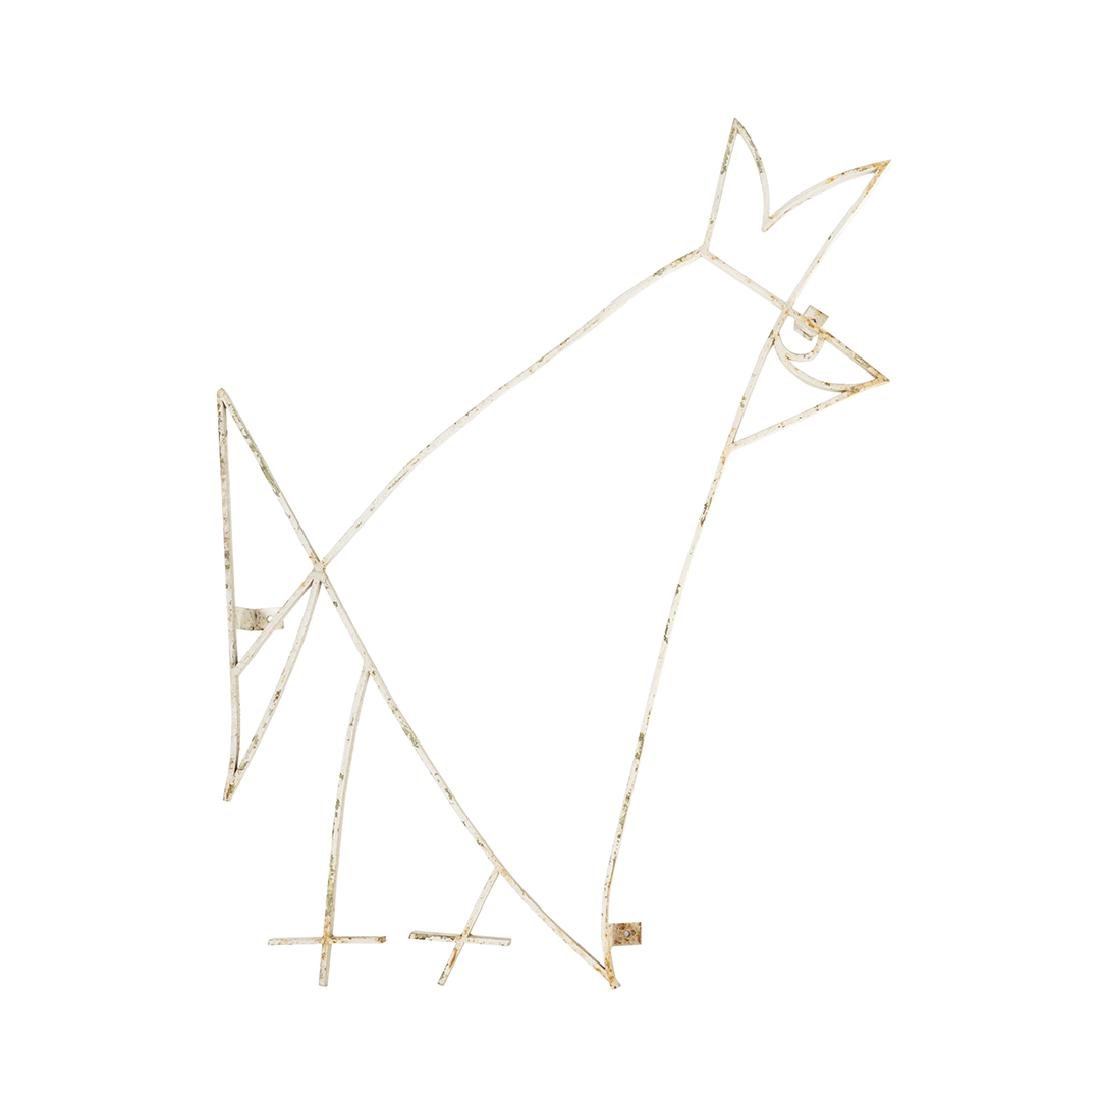 Large Abstract Iron Chickens (4) - 3